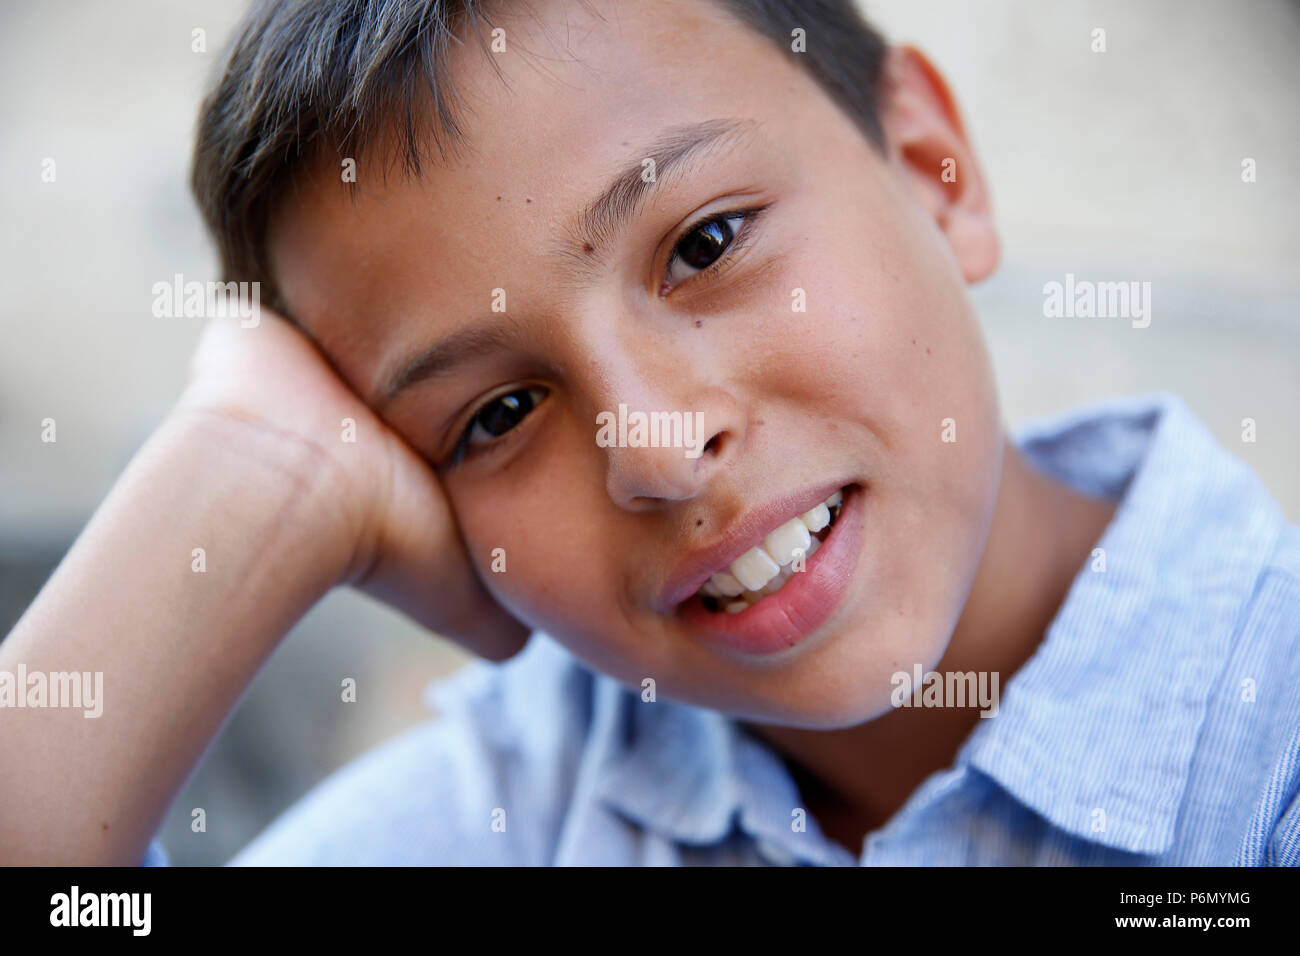 11-year-old boy in Salento, Italy. - Stock Image